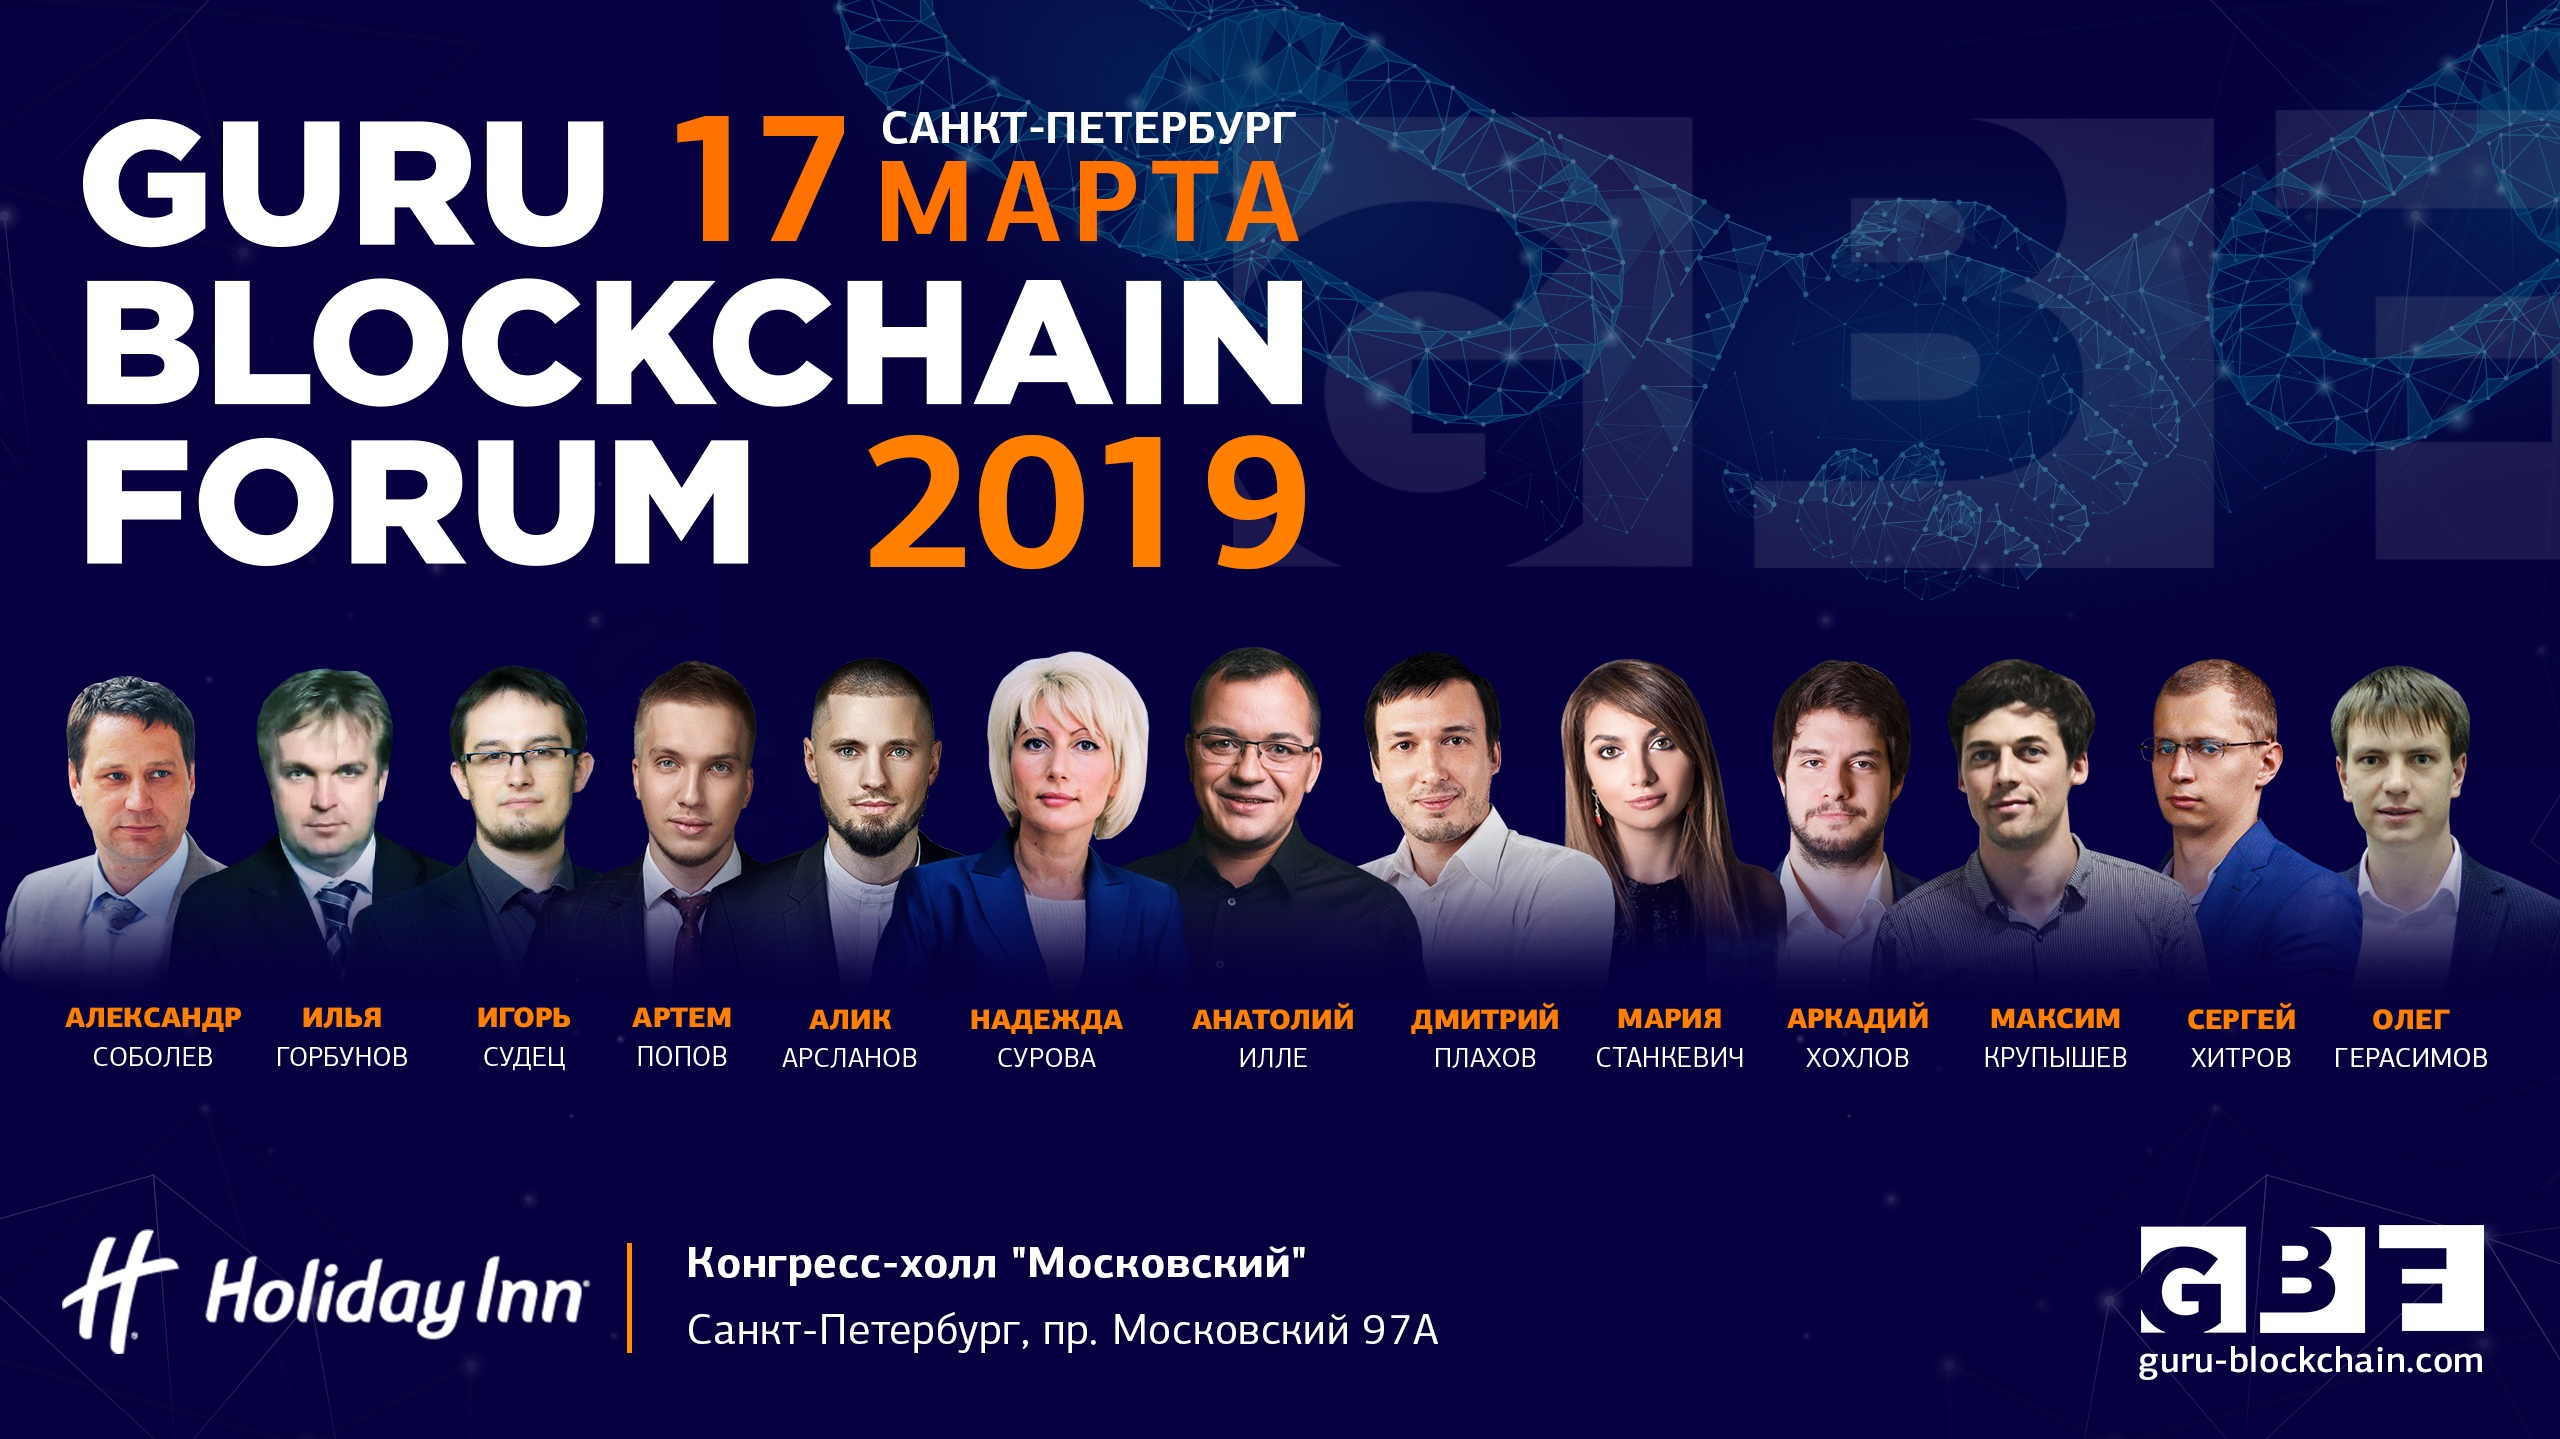 Guru Blockchain Forum 2019